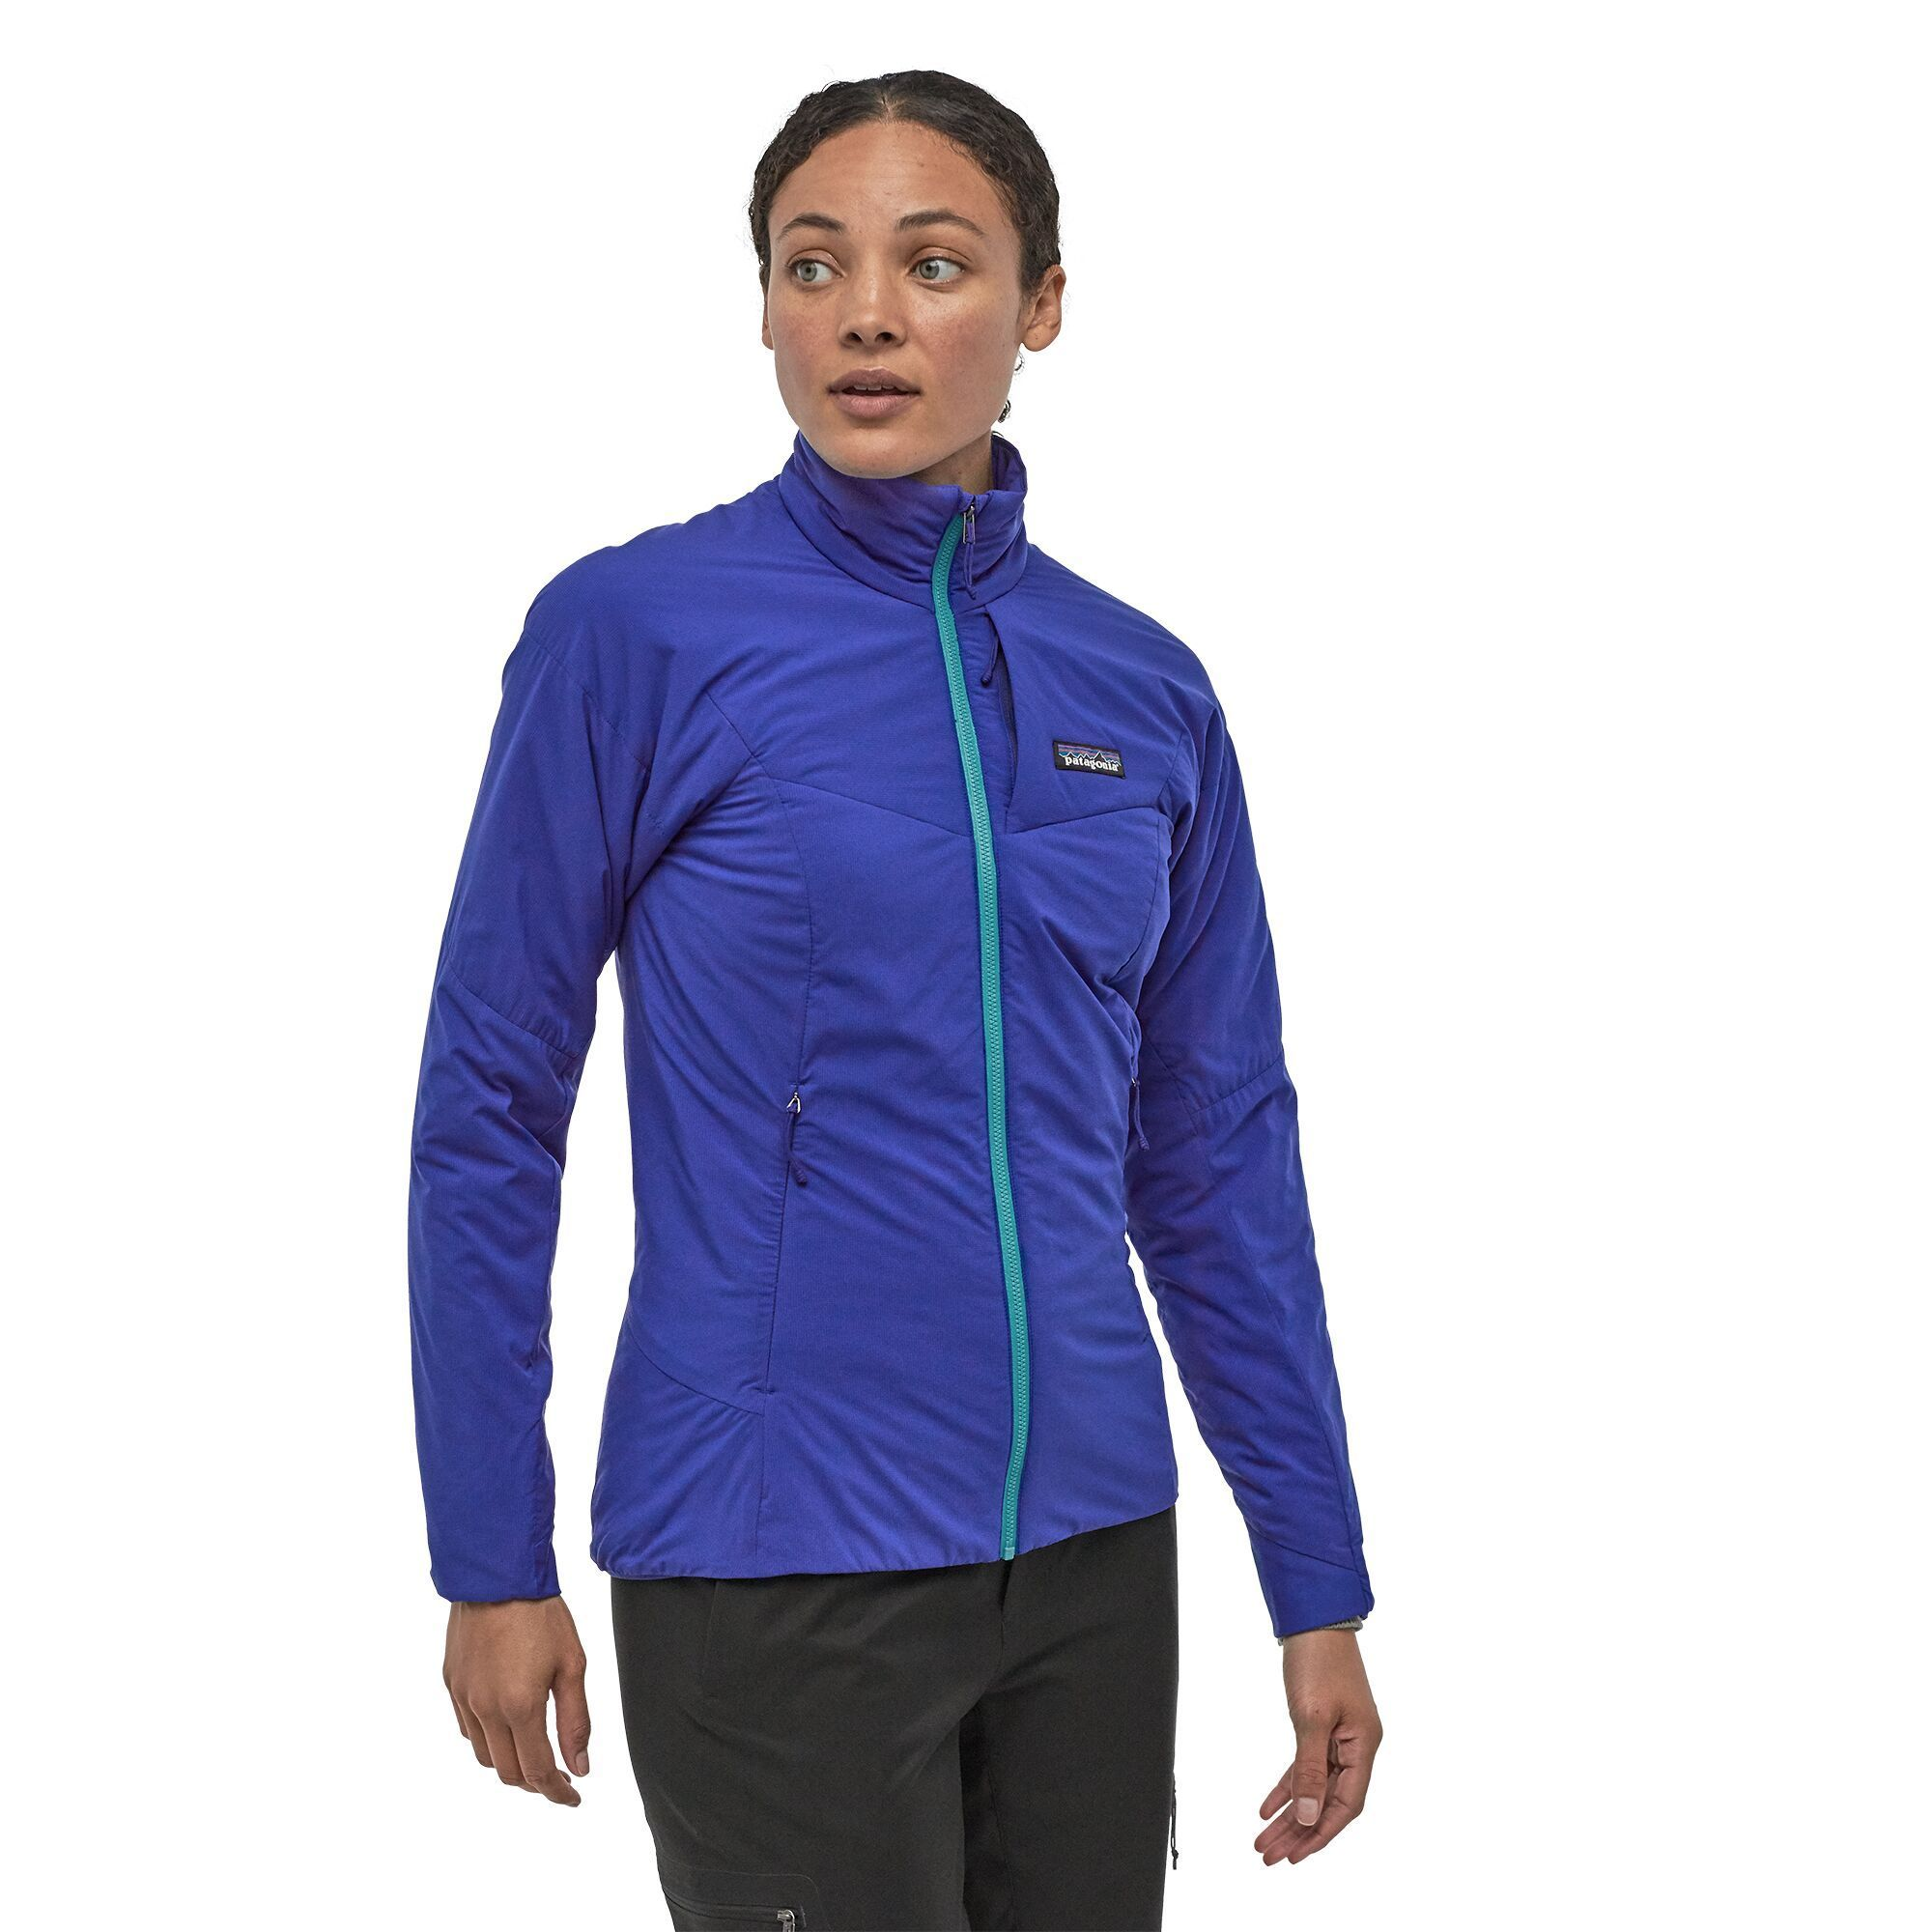 Patagonia - W's Nano-Air® Jacket - Cobalt Blue - Recycled Polyester - Weekendbee - sustainable sportswear